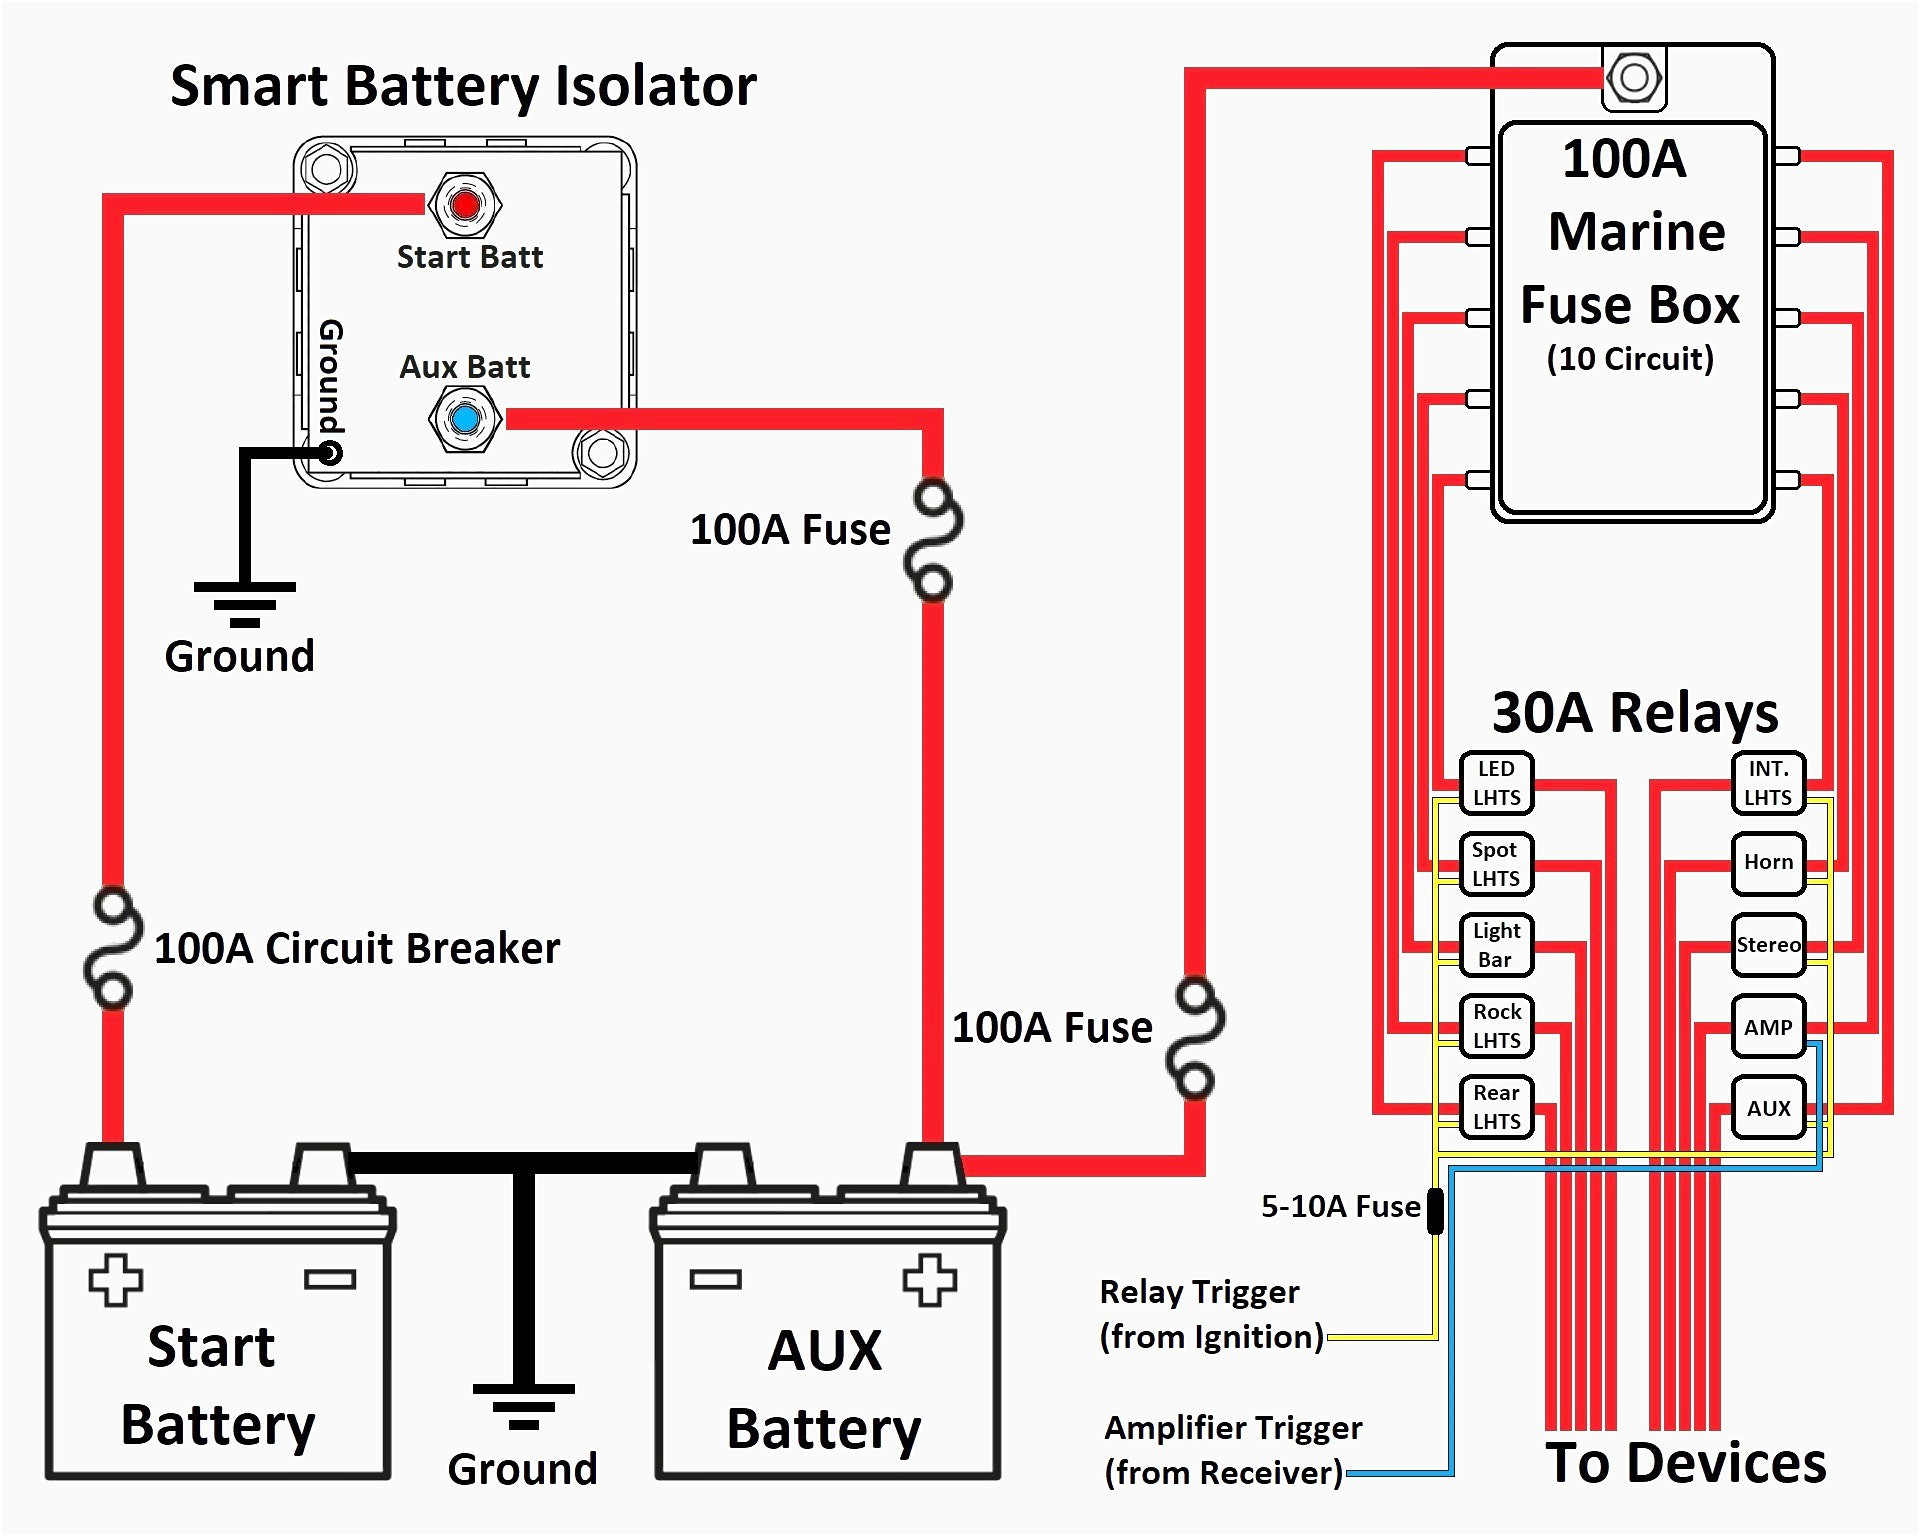 stinger battery isolator wiring diagram Download-Battery isolator Wiring Diagram New Battery isolator Wiring Diagram Webtor Ideas Collection Battery 7-n